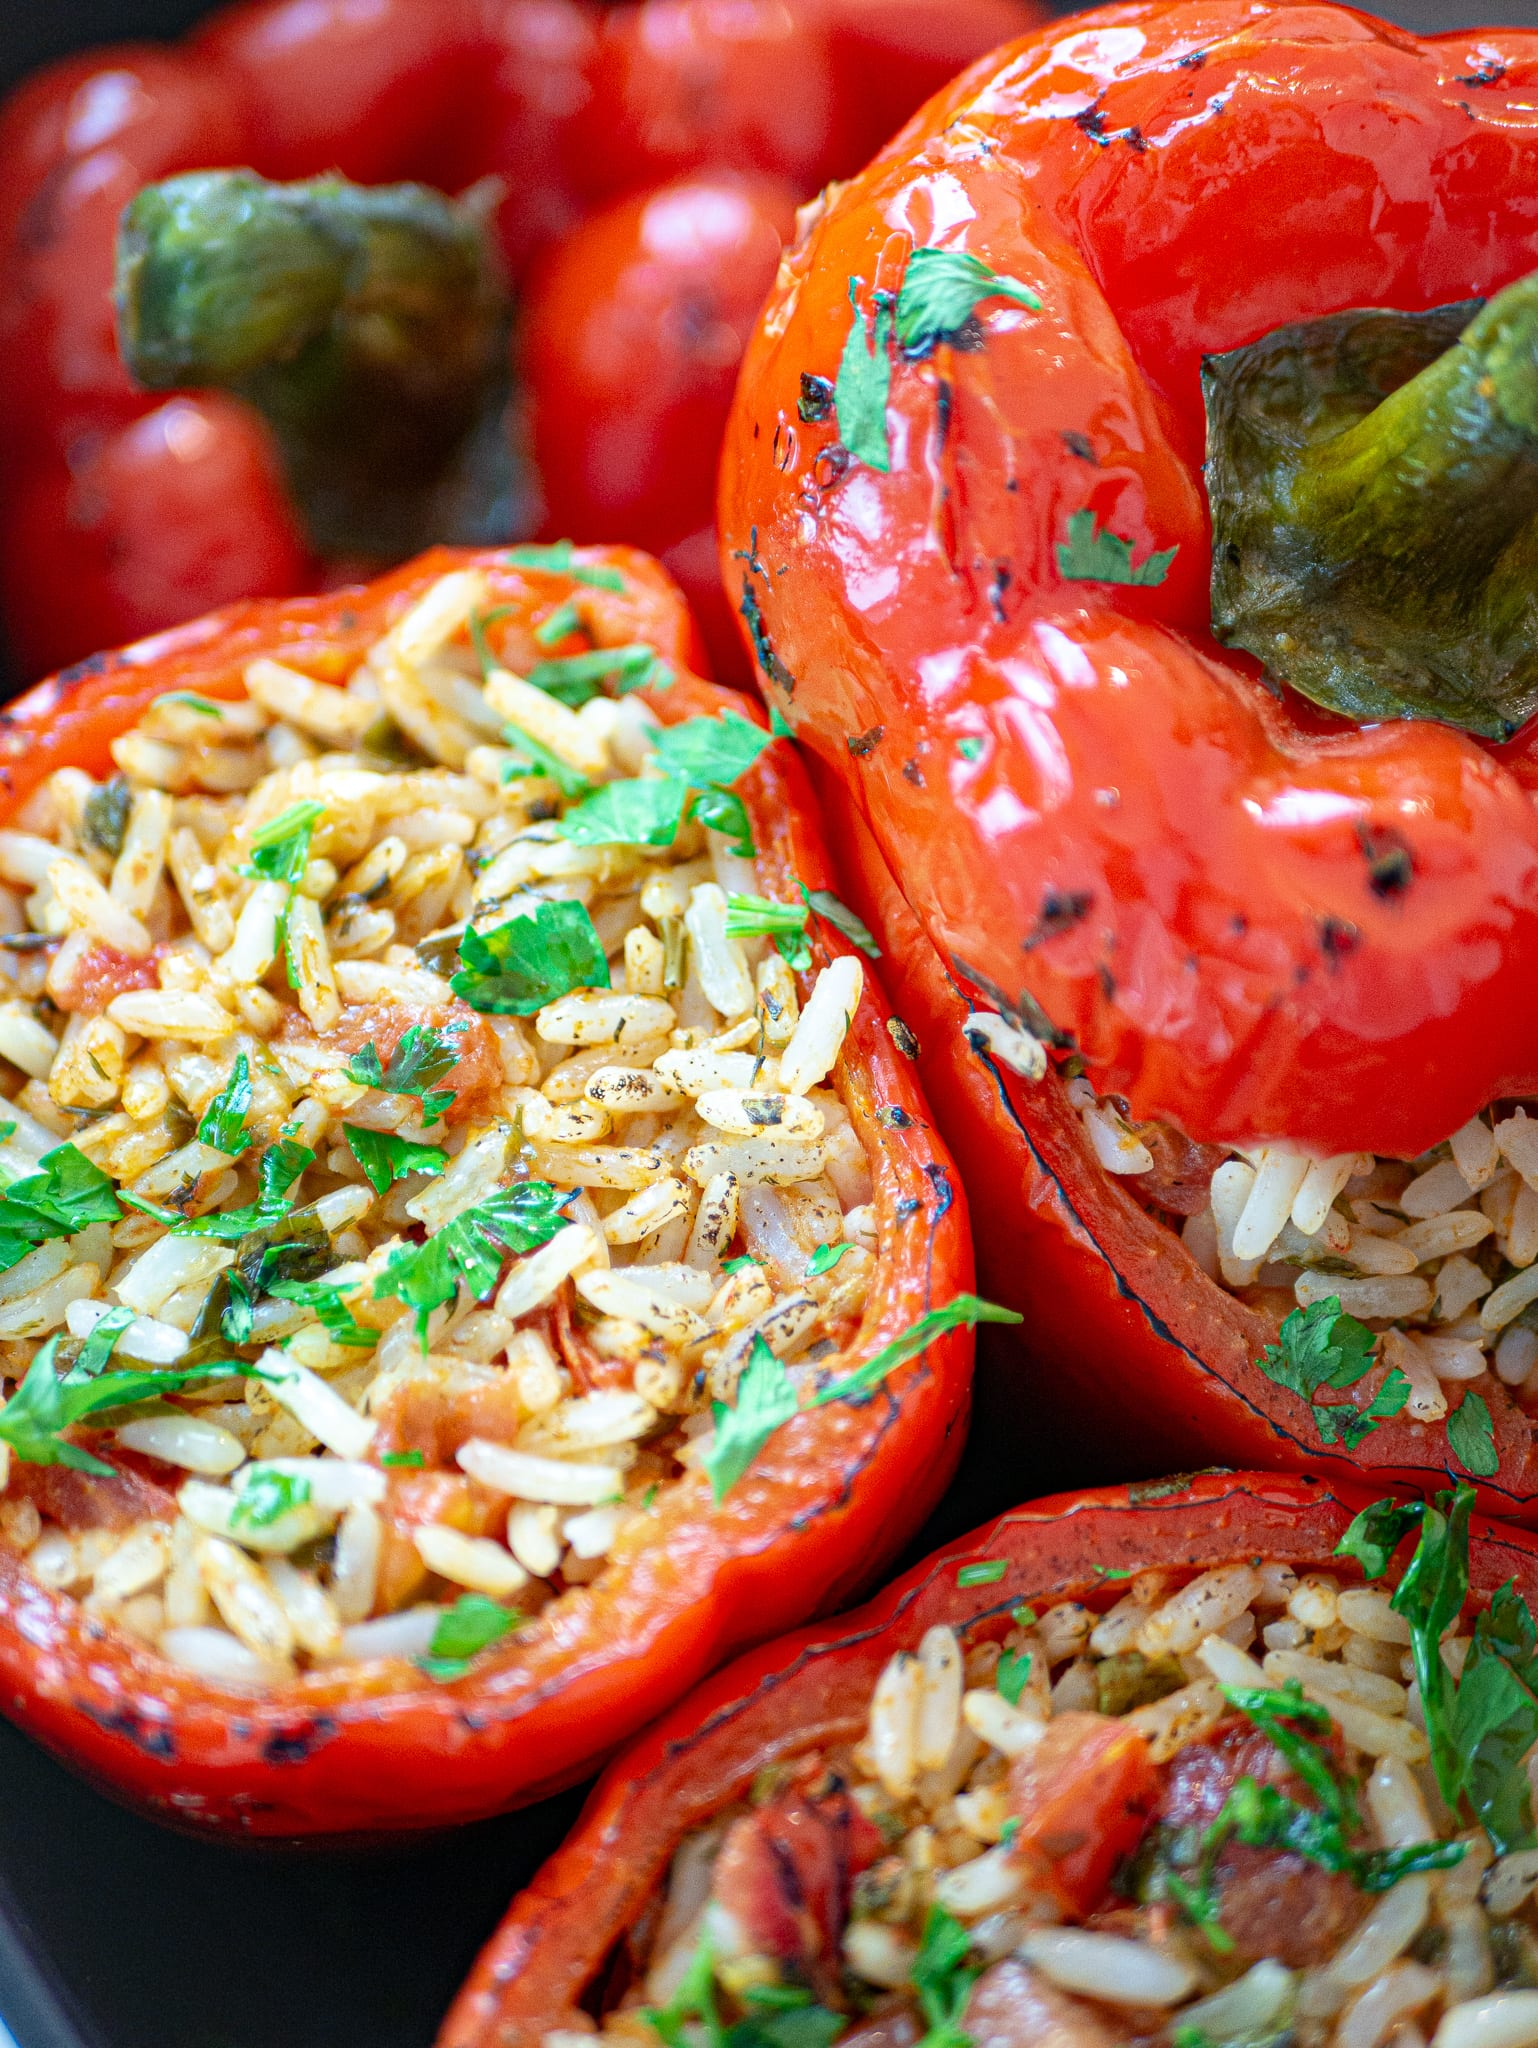 VEGAN STUFFED RED PEPPERS WITH RICE CLOSE UP